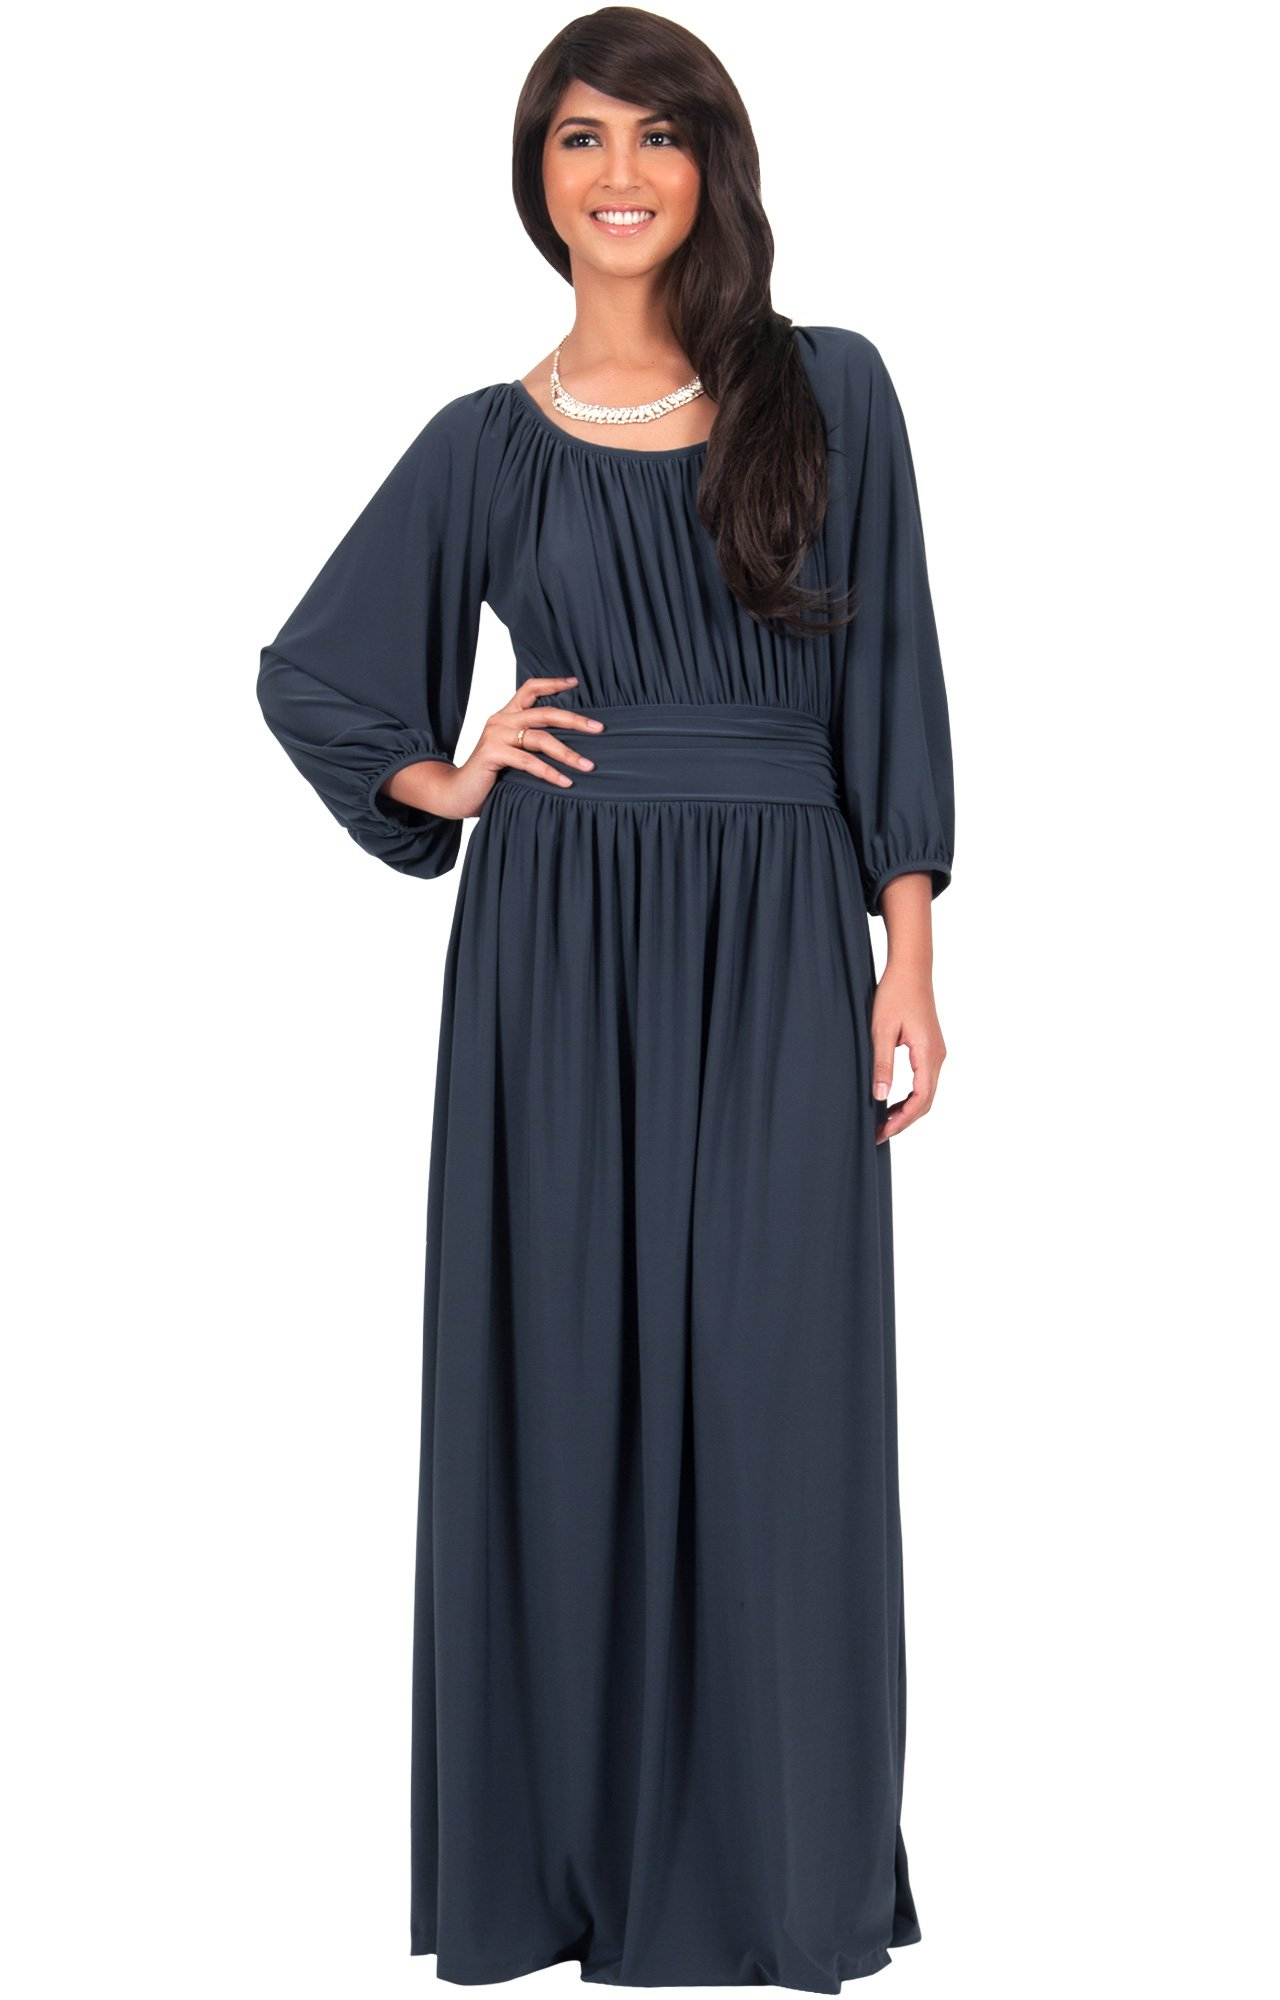 ddf61a23483 KOH KOH Plus Size Womens Long Sleeve Sleeves Vintage Peasant Empire Waist  Fall Loose Flowy Fall Winter Casual Maternity Abaya Gown Gowns Maxi Dress  Dresses